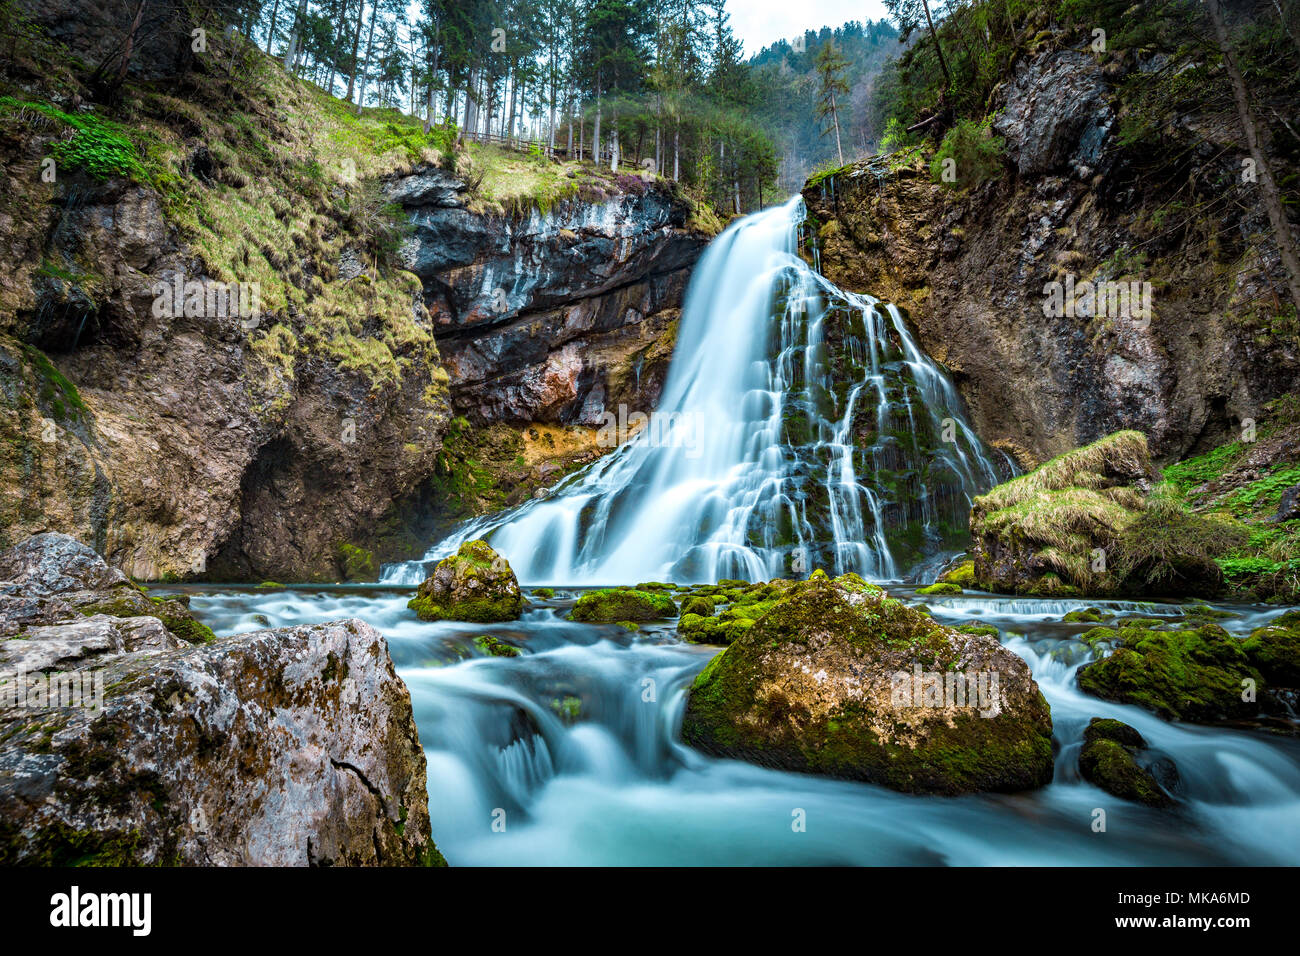 Beautiful view of famous Gollinger Wasserfall with mossy rocks and green trees on a moody in springtime, Golling, Salzburger Land, Austria Stock Photo